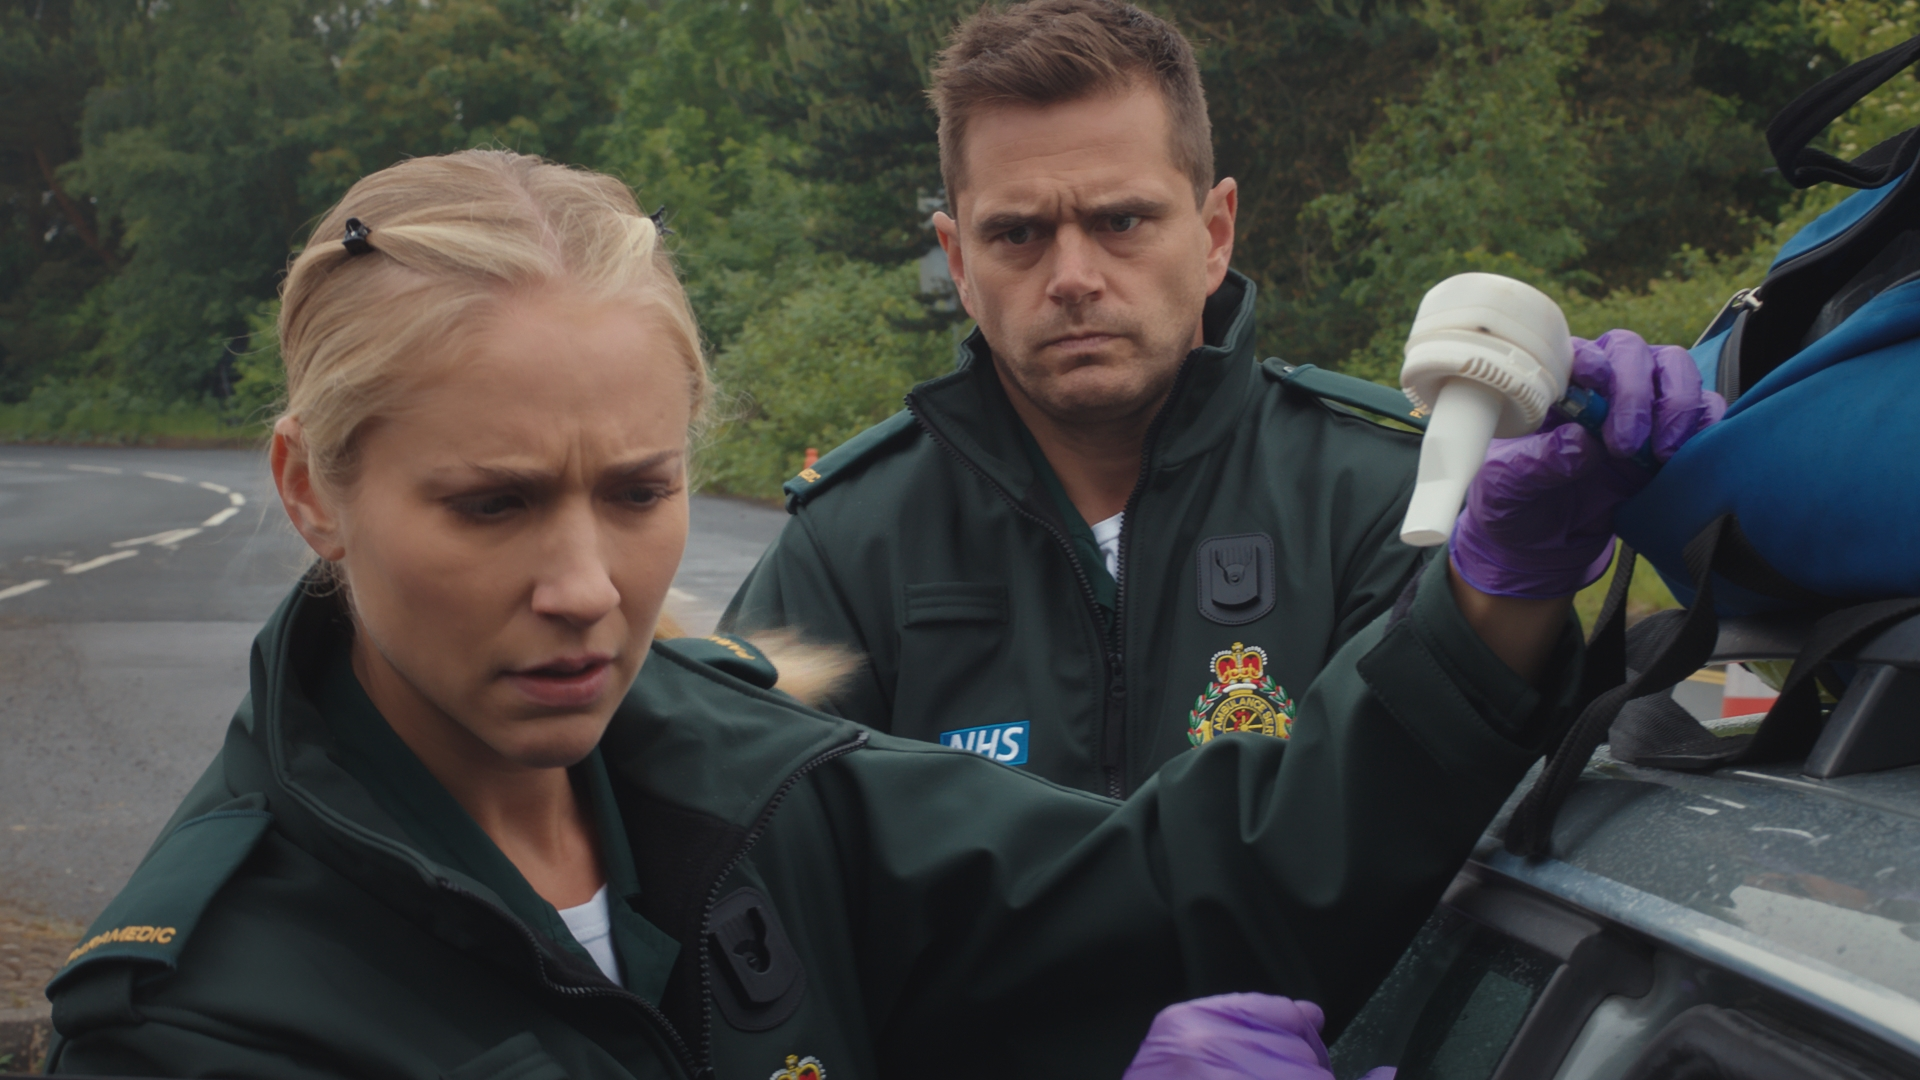 Casualty review with spoilers: Ruby regains Iain's trust